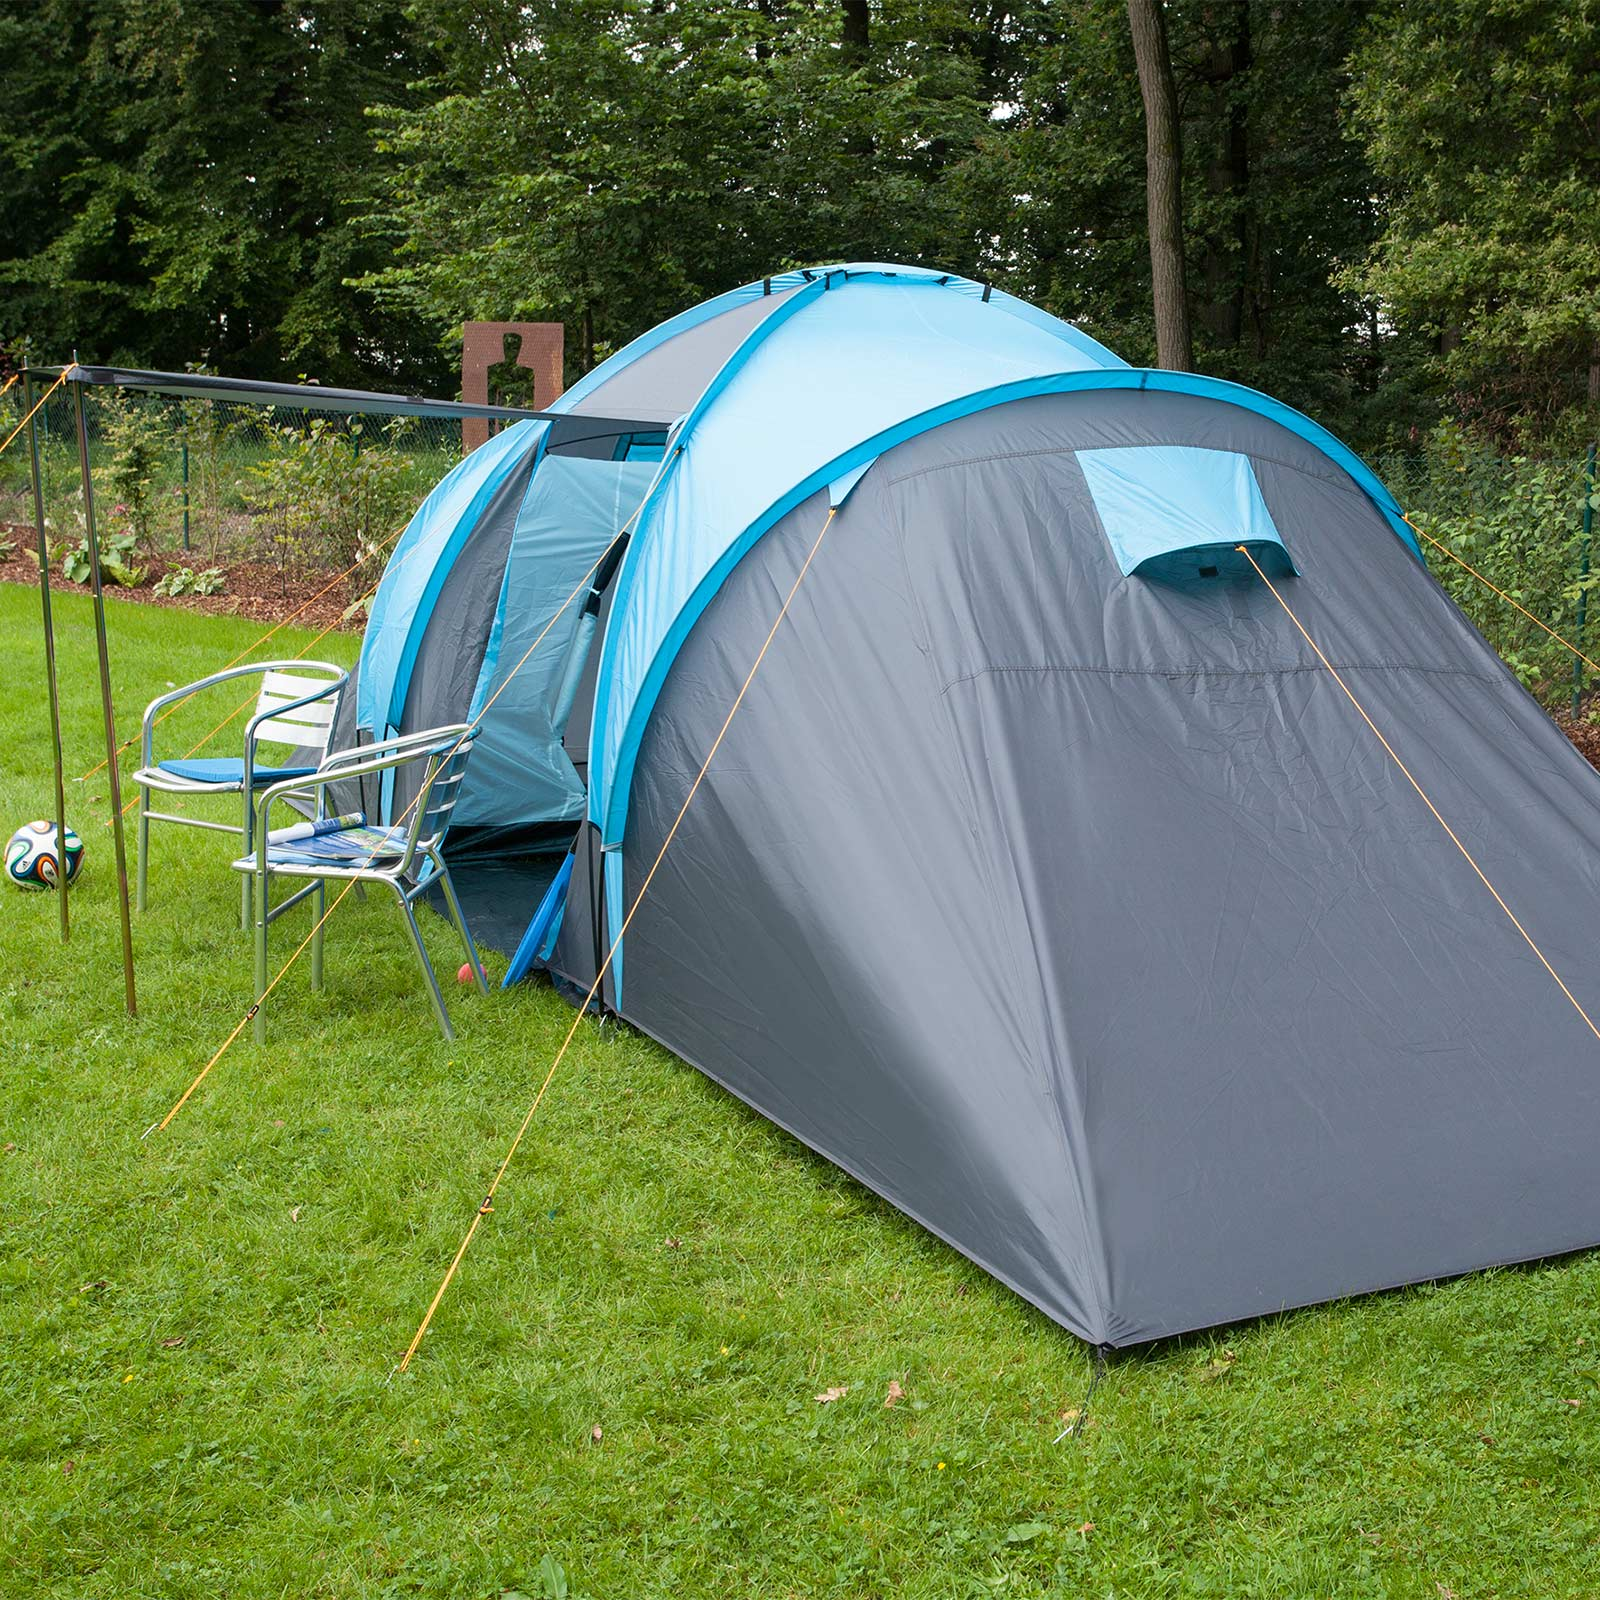 Skandika Hammerfest 8 Person Man Family Tent Camping Dome